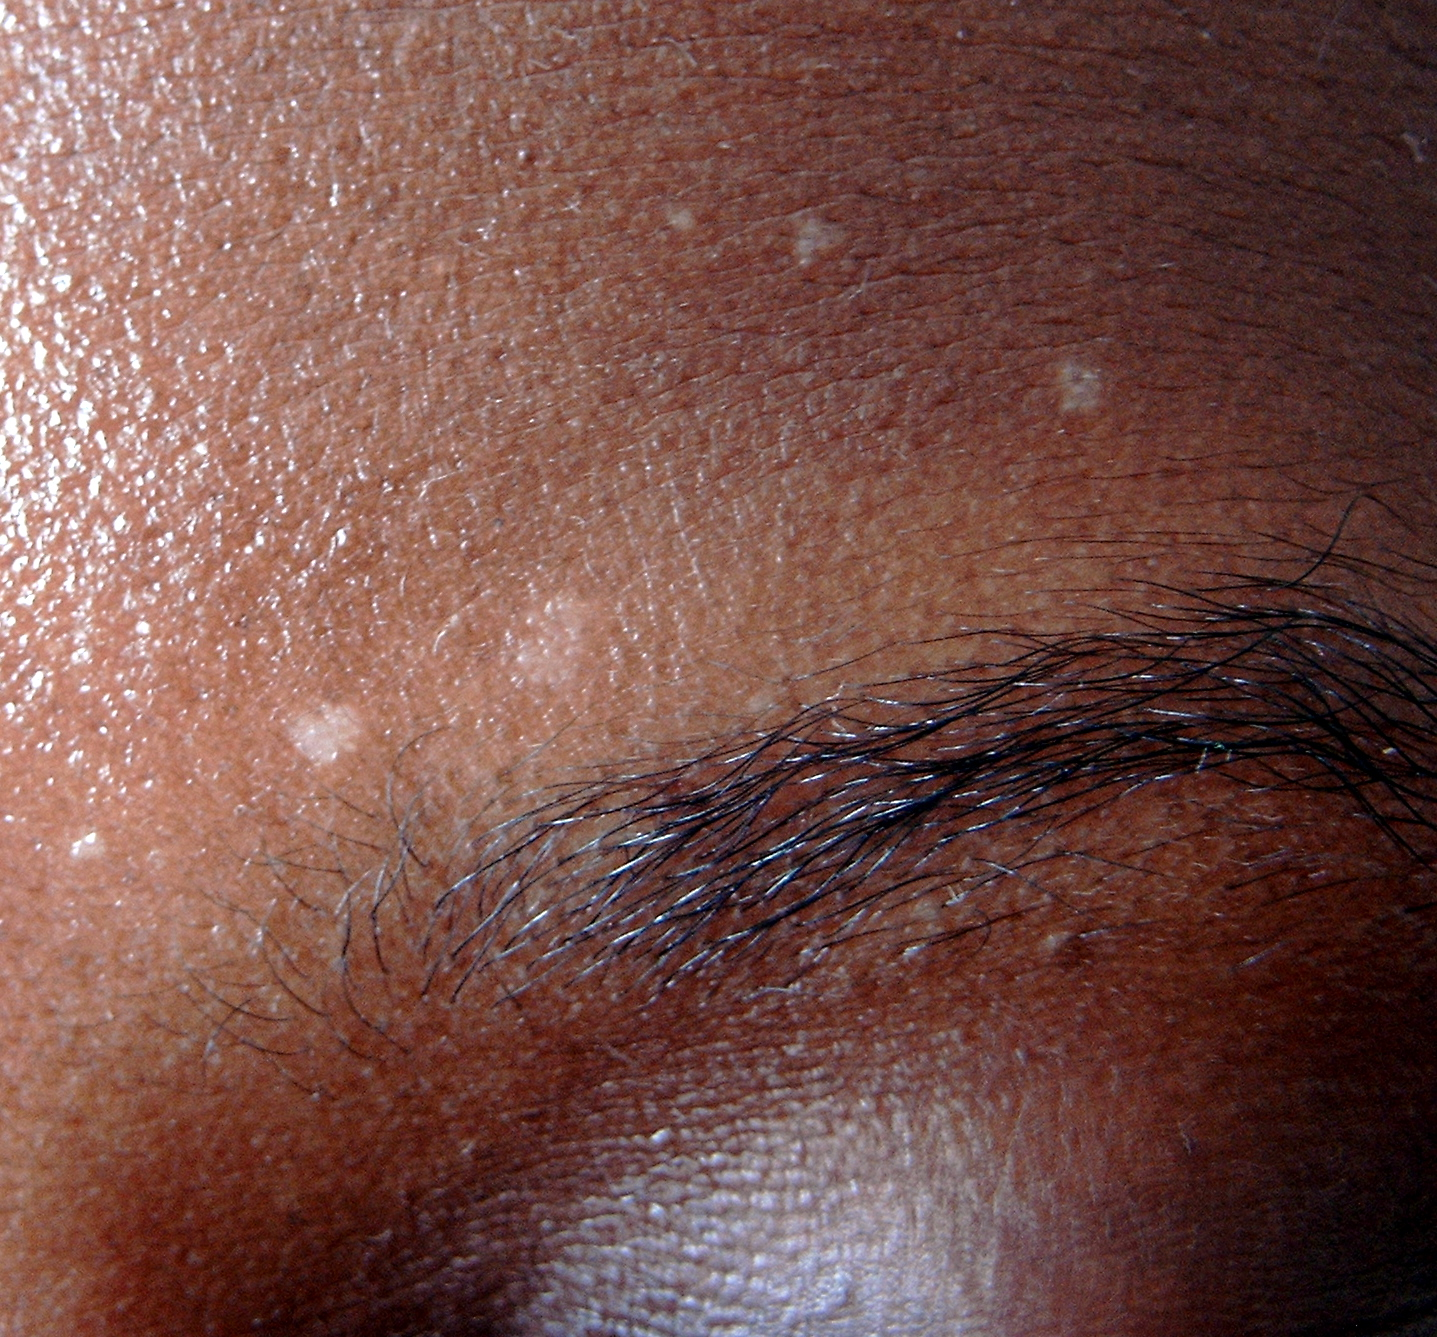 steroid creams for rashes